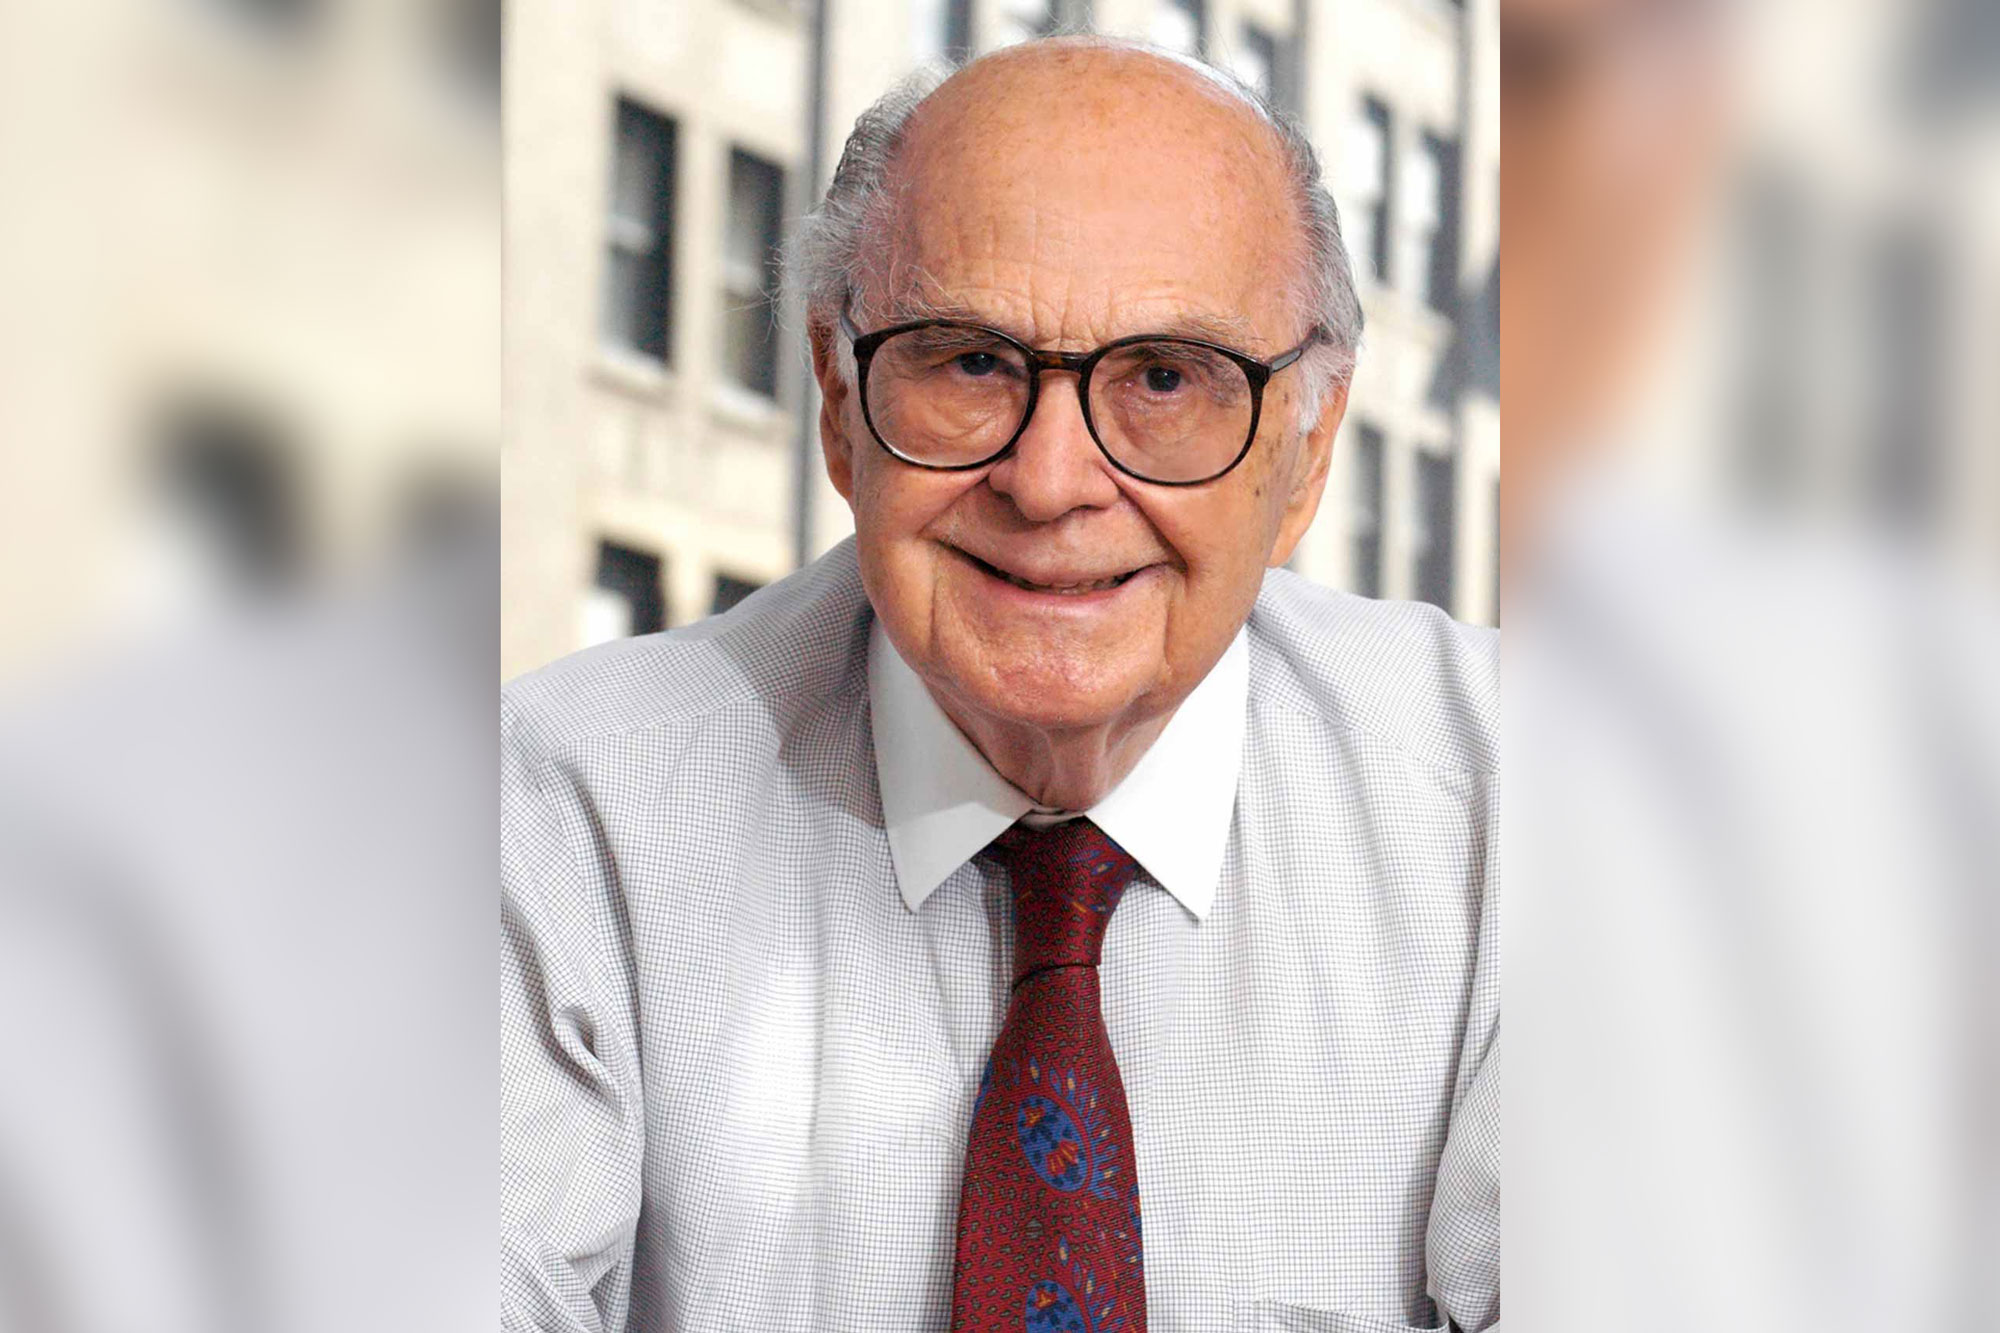 Agency Brief: Harold Burson dies at 98, BBH NY CCO becomes Wieden & Kennedy creative director